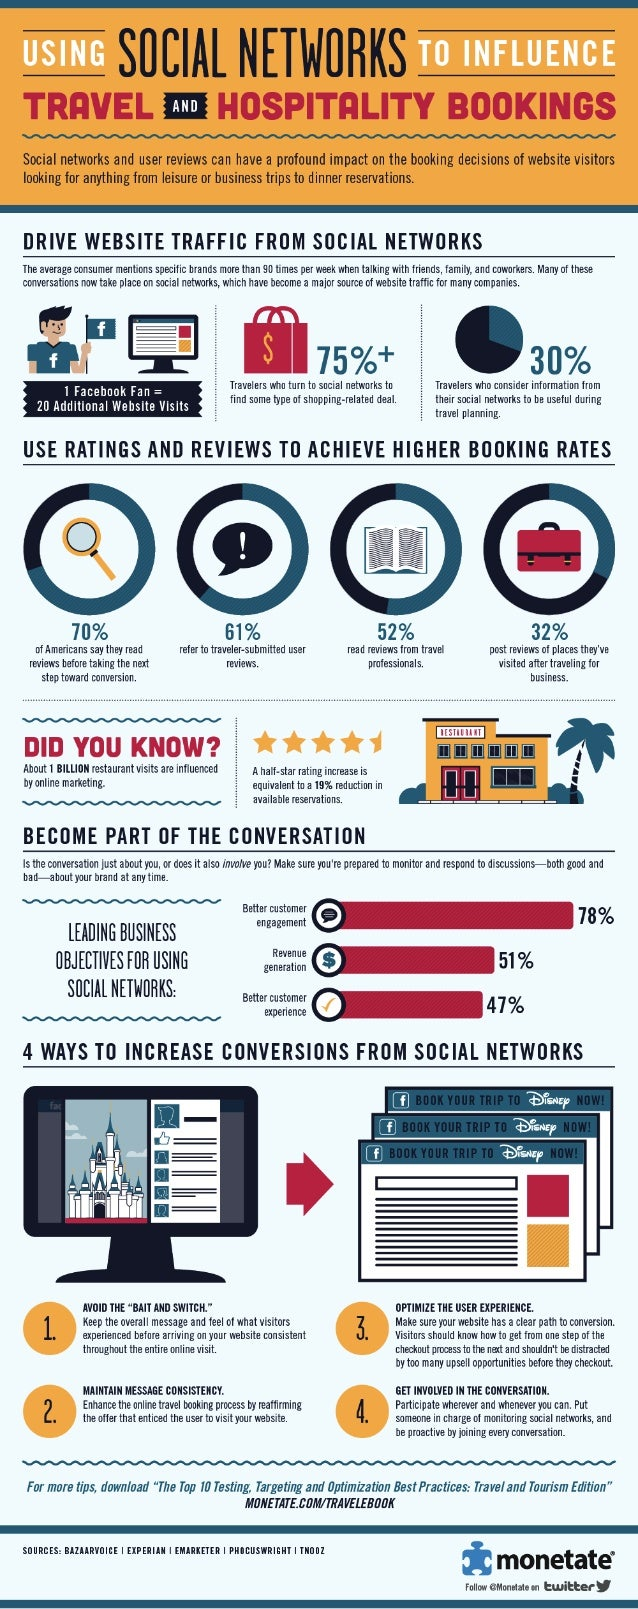 Using Social Networks to Influence Travel and Hospitality Bookings